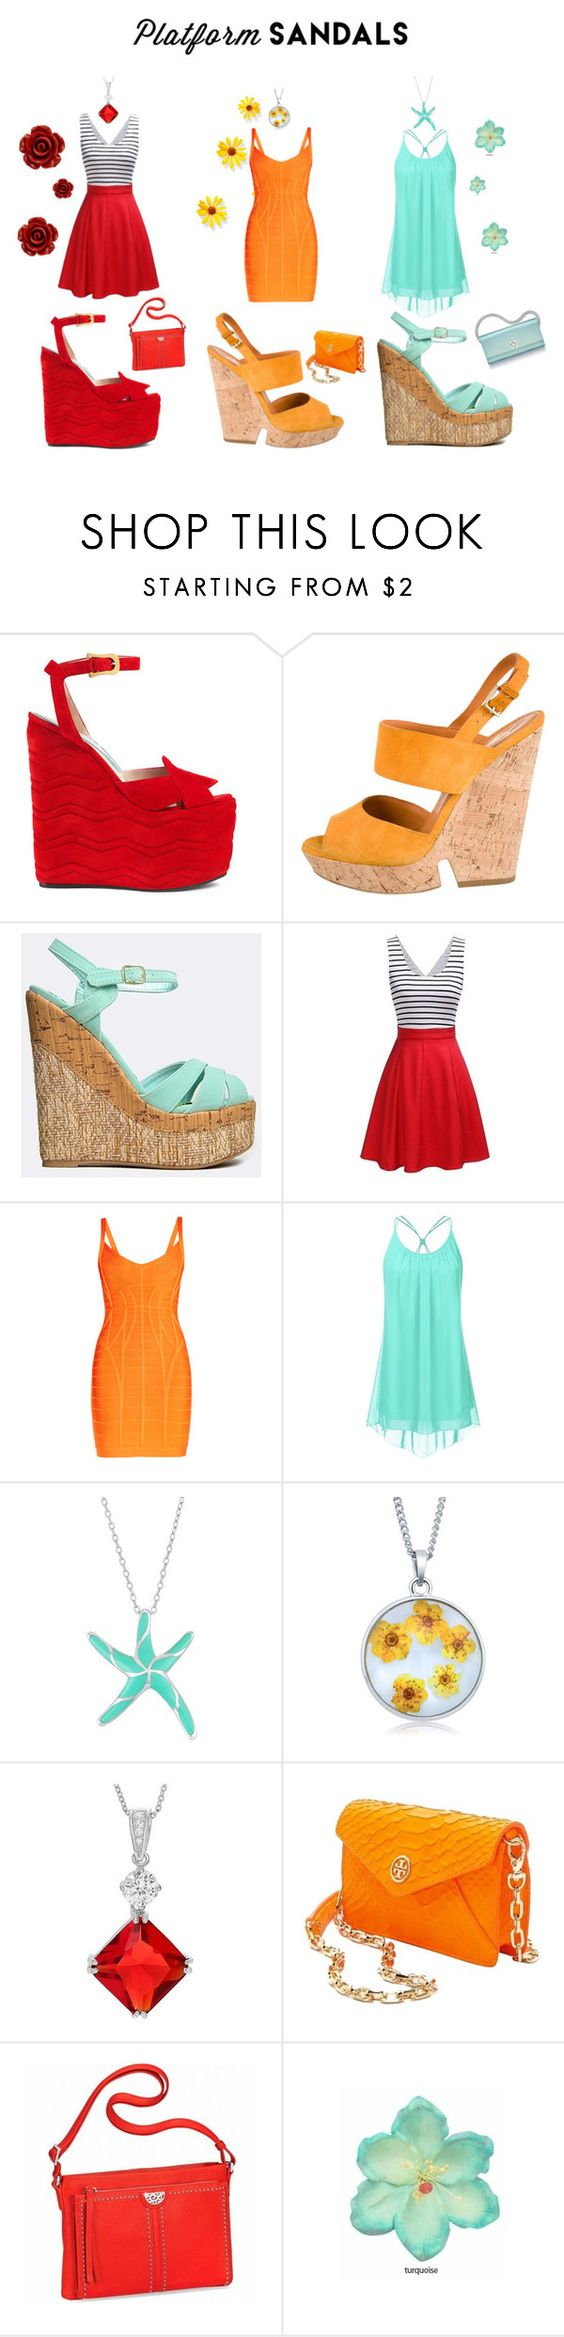 """Platform Sandals"" by deborahparker ❤ liked on Polyvore featuring Gucci, Yves Saint Laurent, Qupid, Hervé Léger, Journee Collection, Tory Burch, Brighton, Clips, Bling Jewelry and platformsandals"